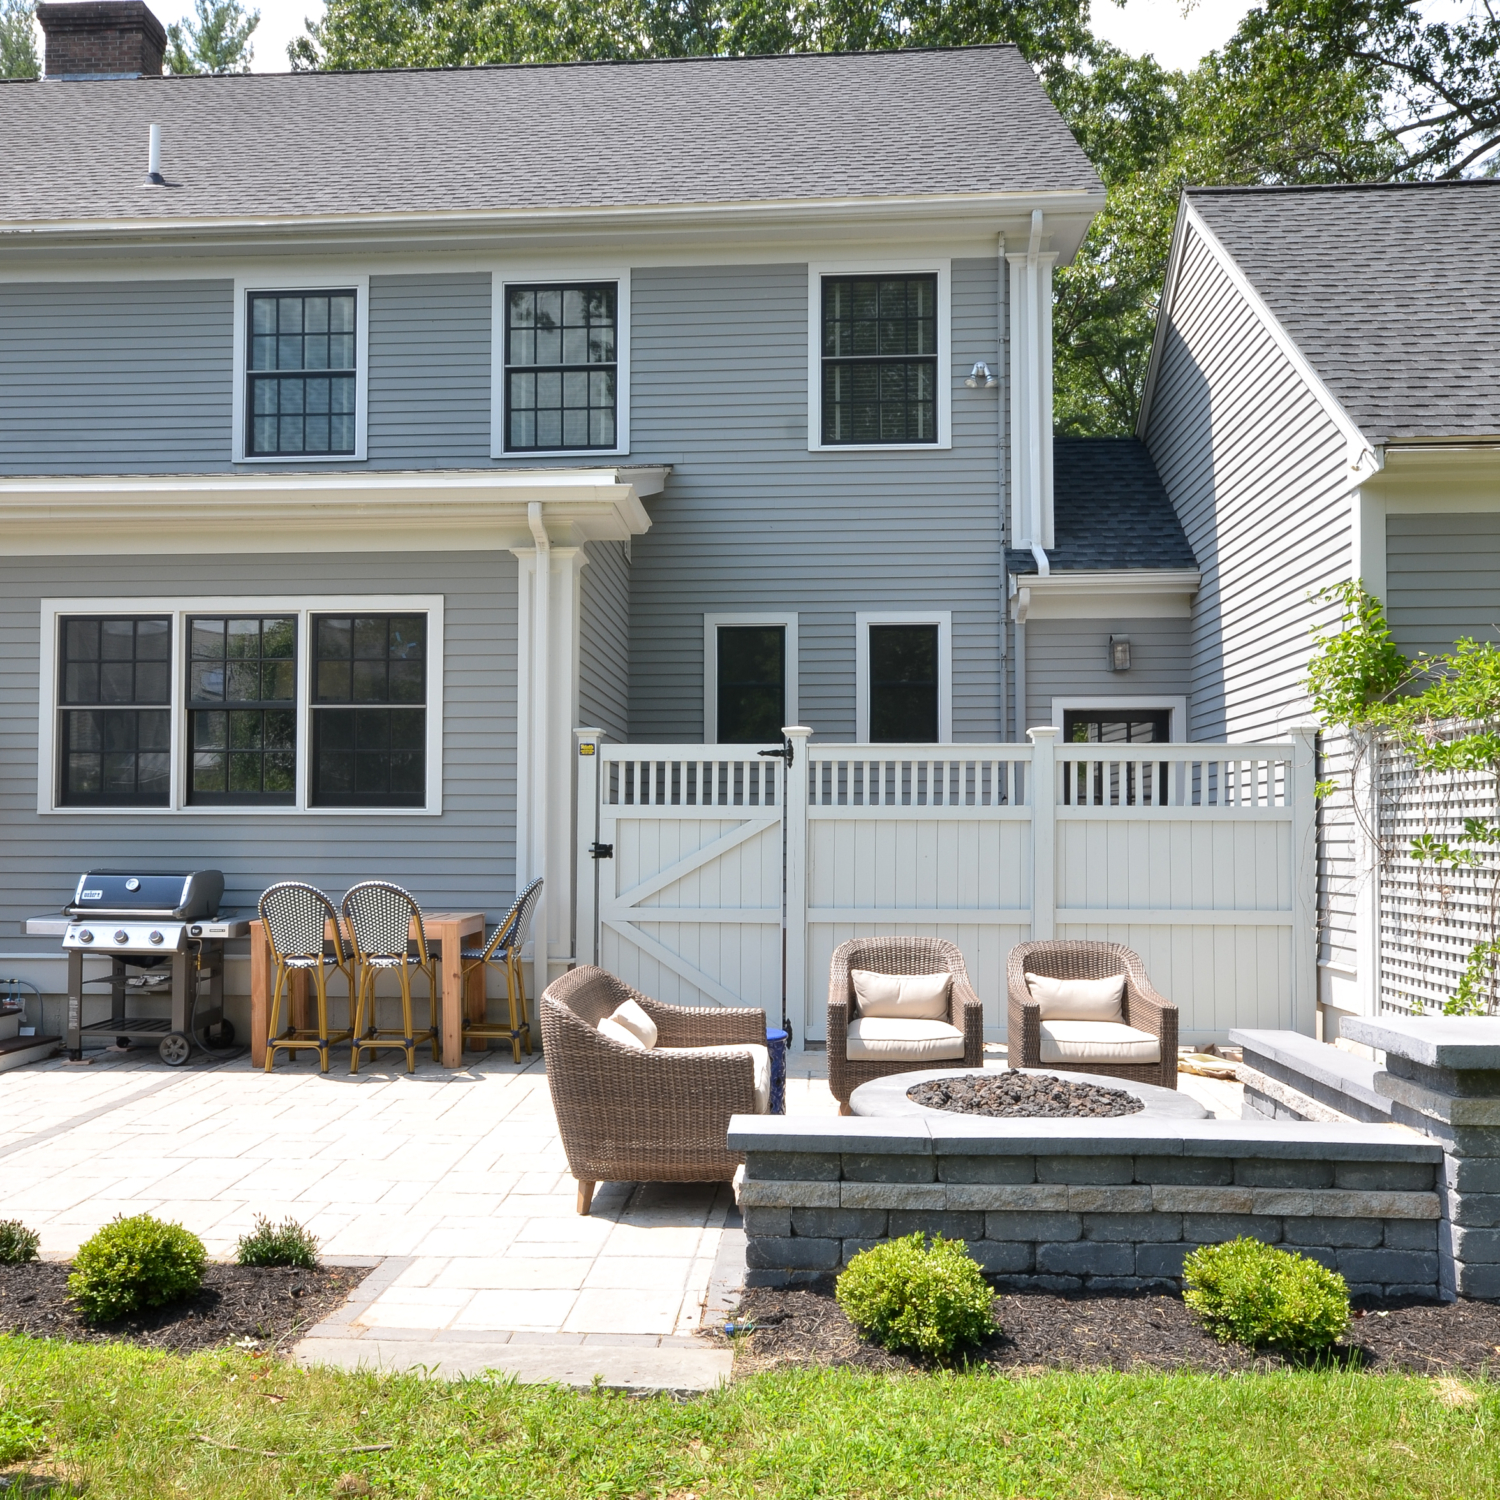 Amazing backyard landscaping makeover that includes a Trex deck, a paver patio with gas firepit, and a paver patio with a fountain and benches. So much outdoor inspiration!